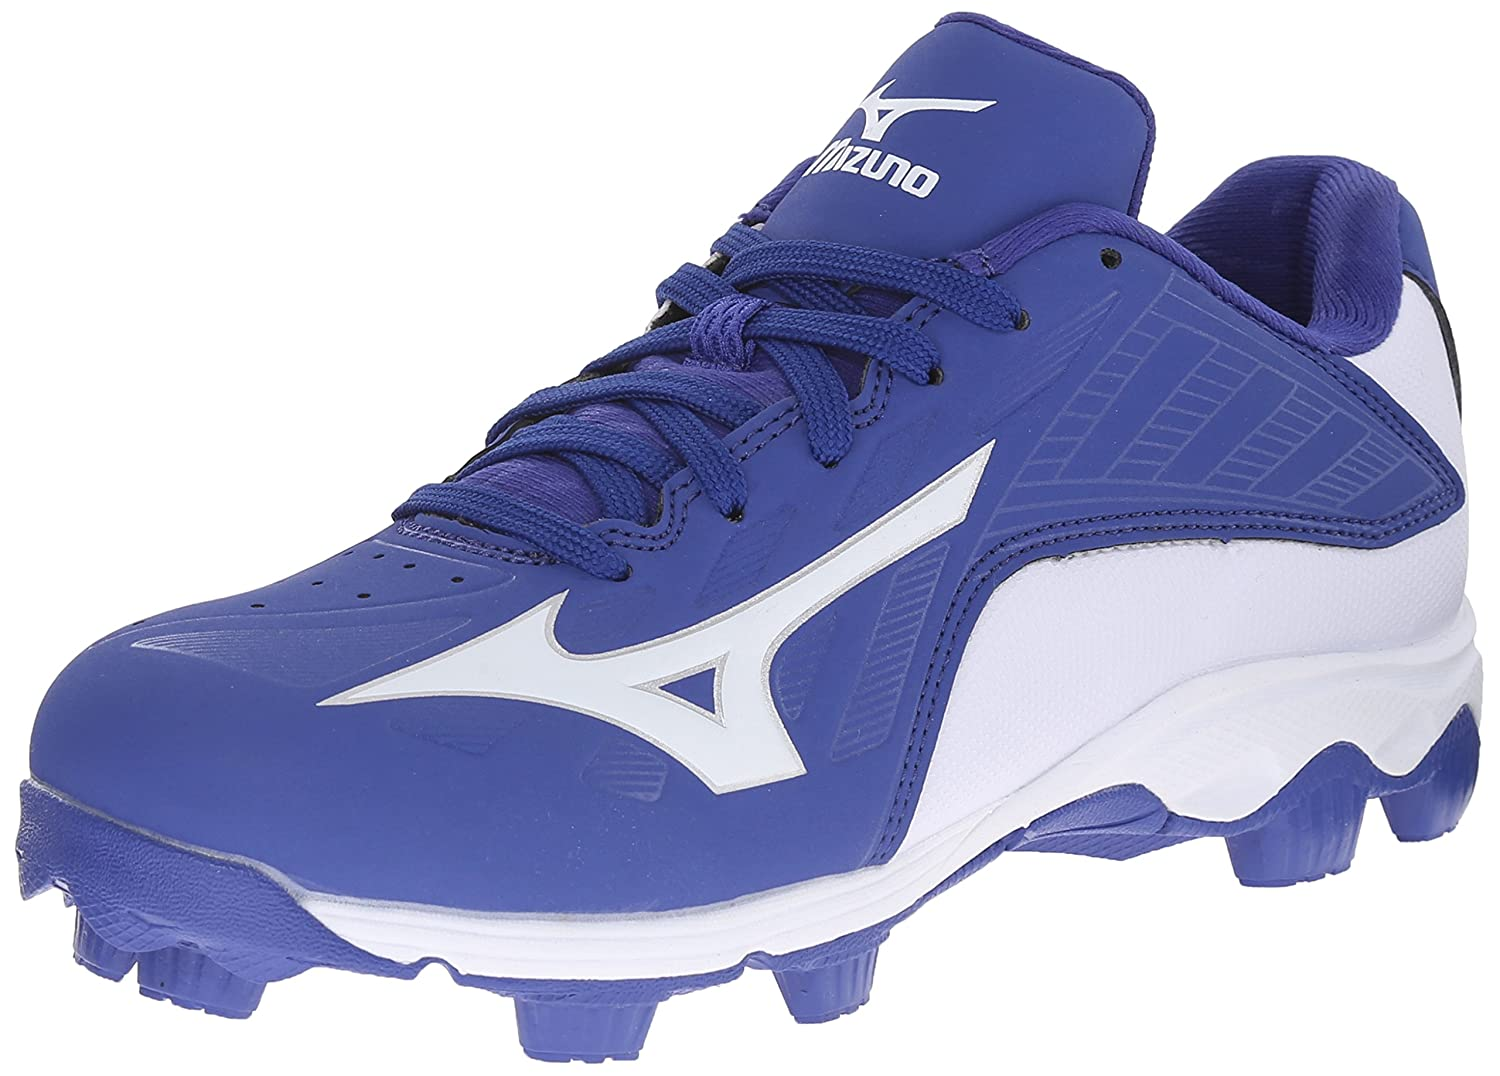 Mizuno 9Spike Advanced Franchise 8 Low Youth Baseball Cleat